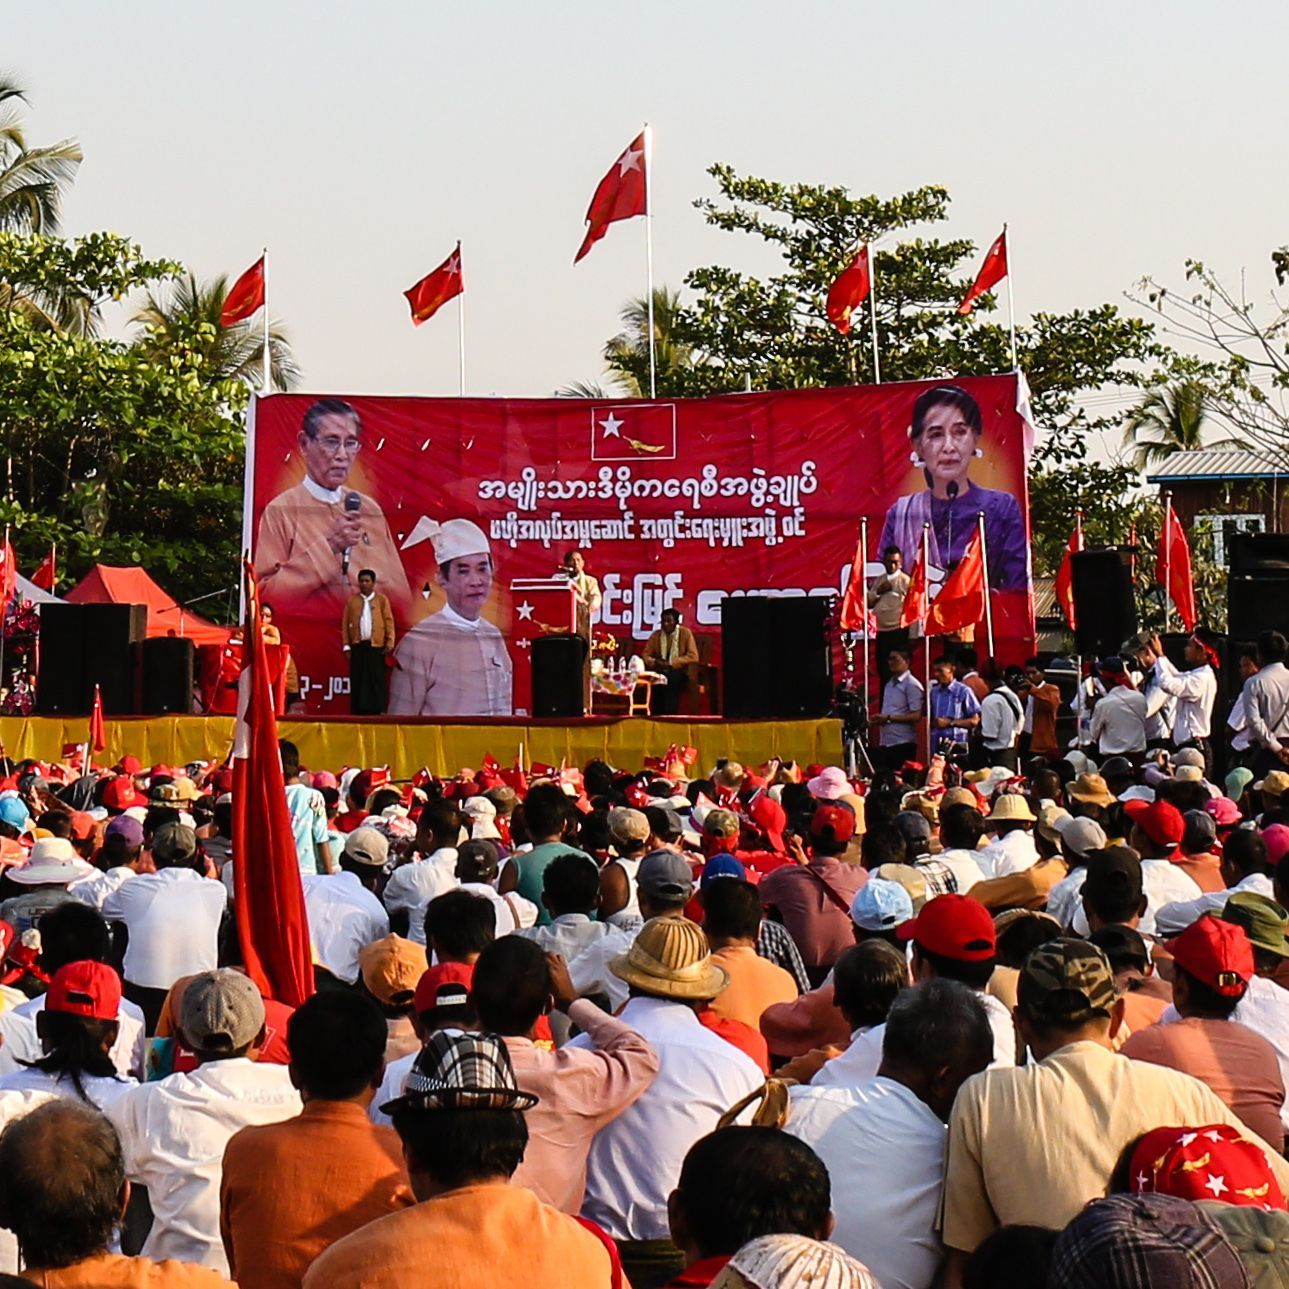 Myanmar heads back to the polls